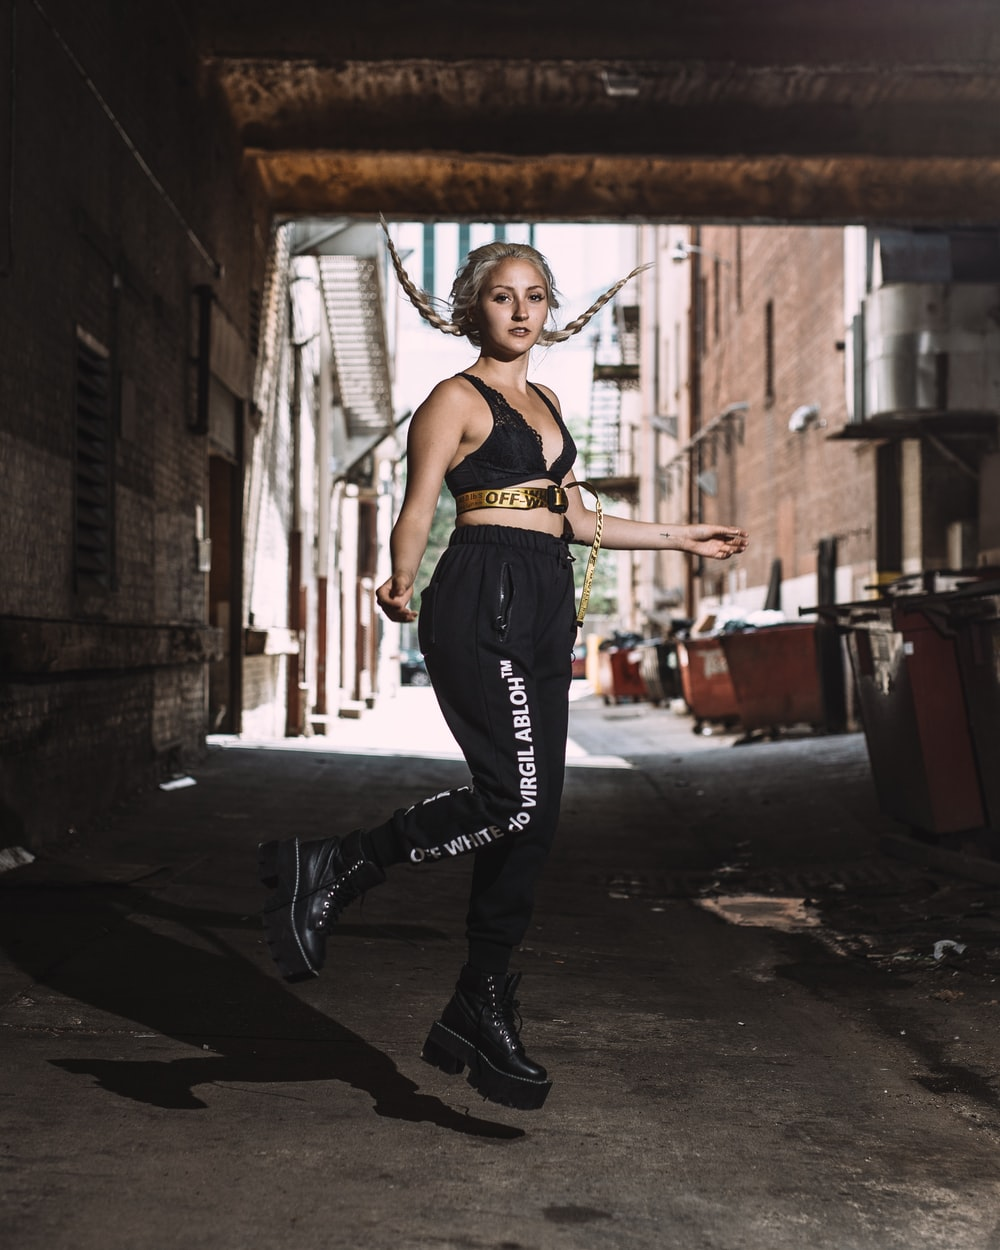 woman in black pants and black leather boots standing on black asphalt road during daytime